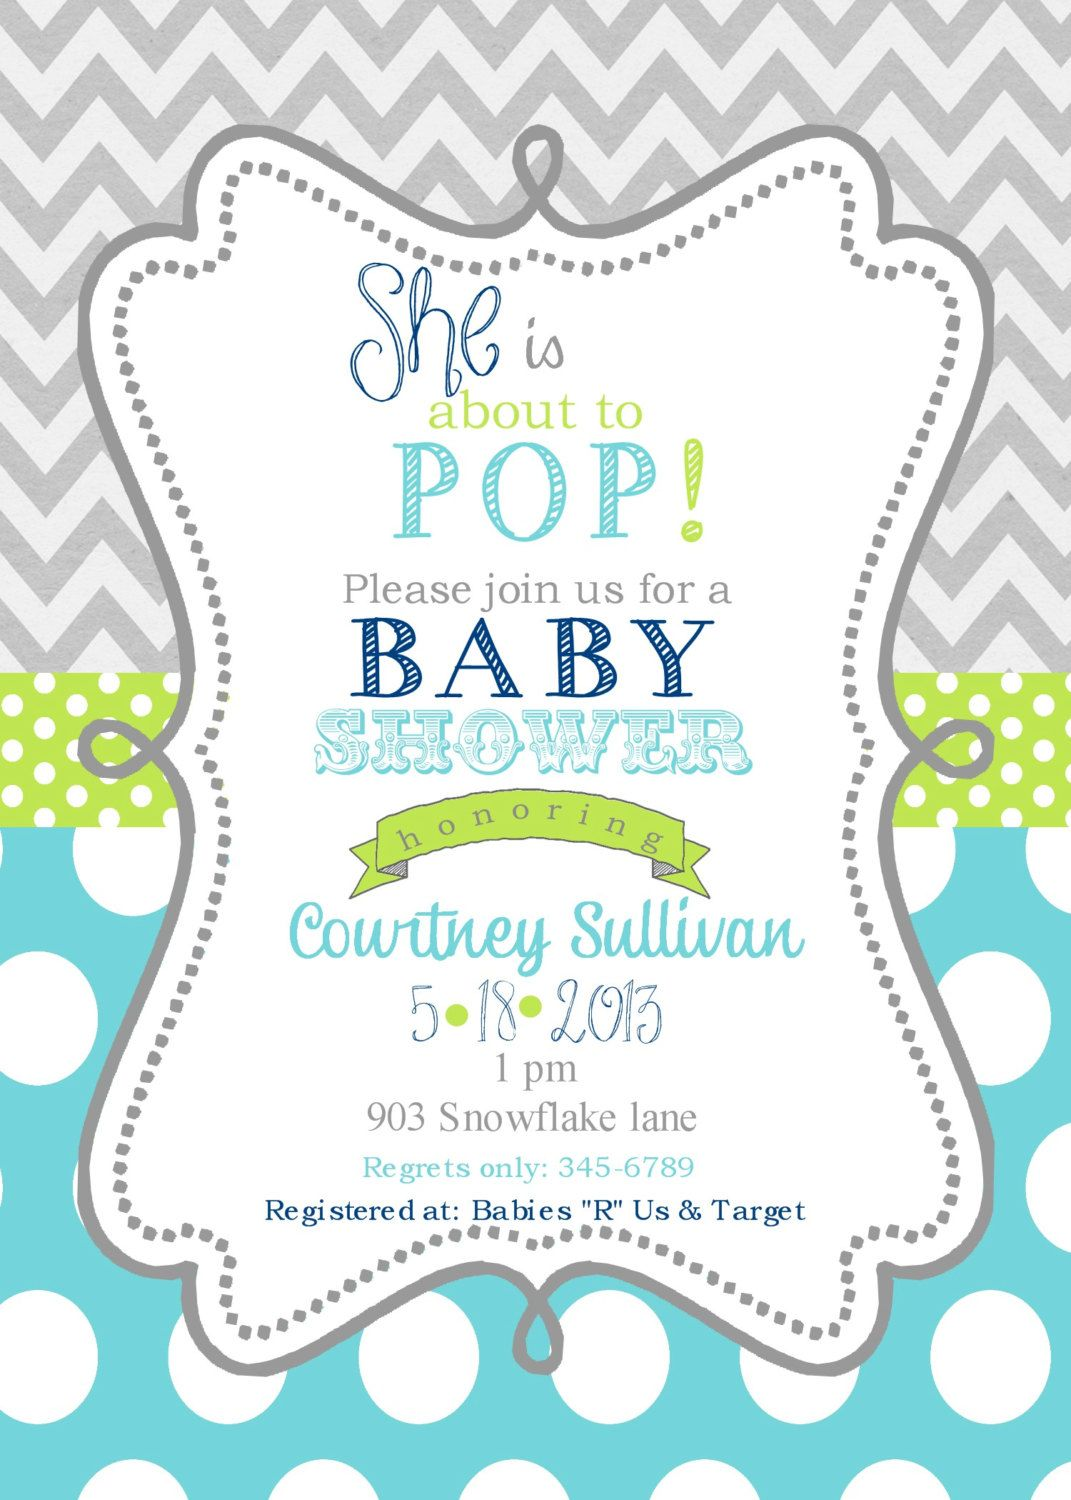 Baby Shower Invitations With Images